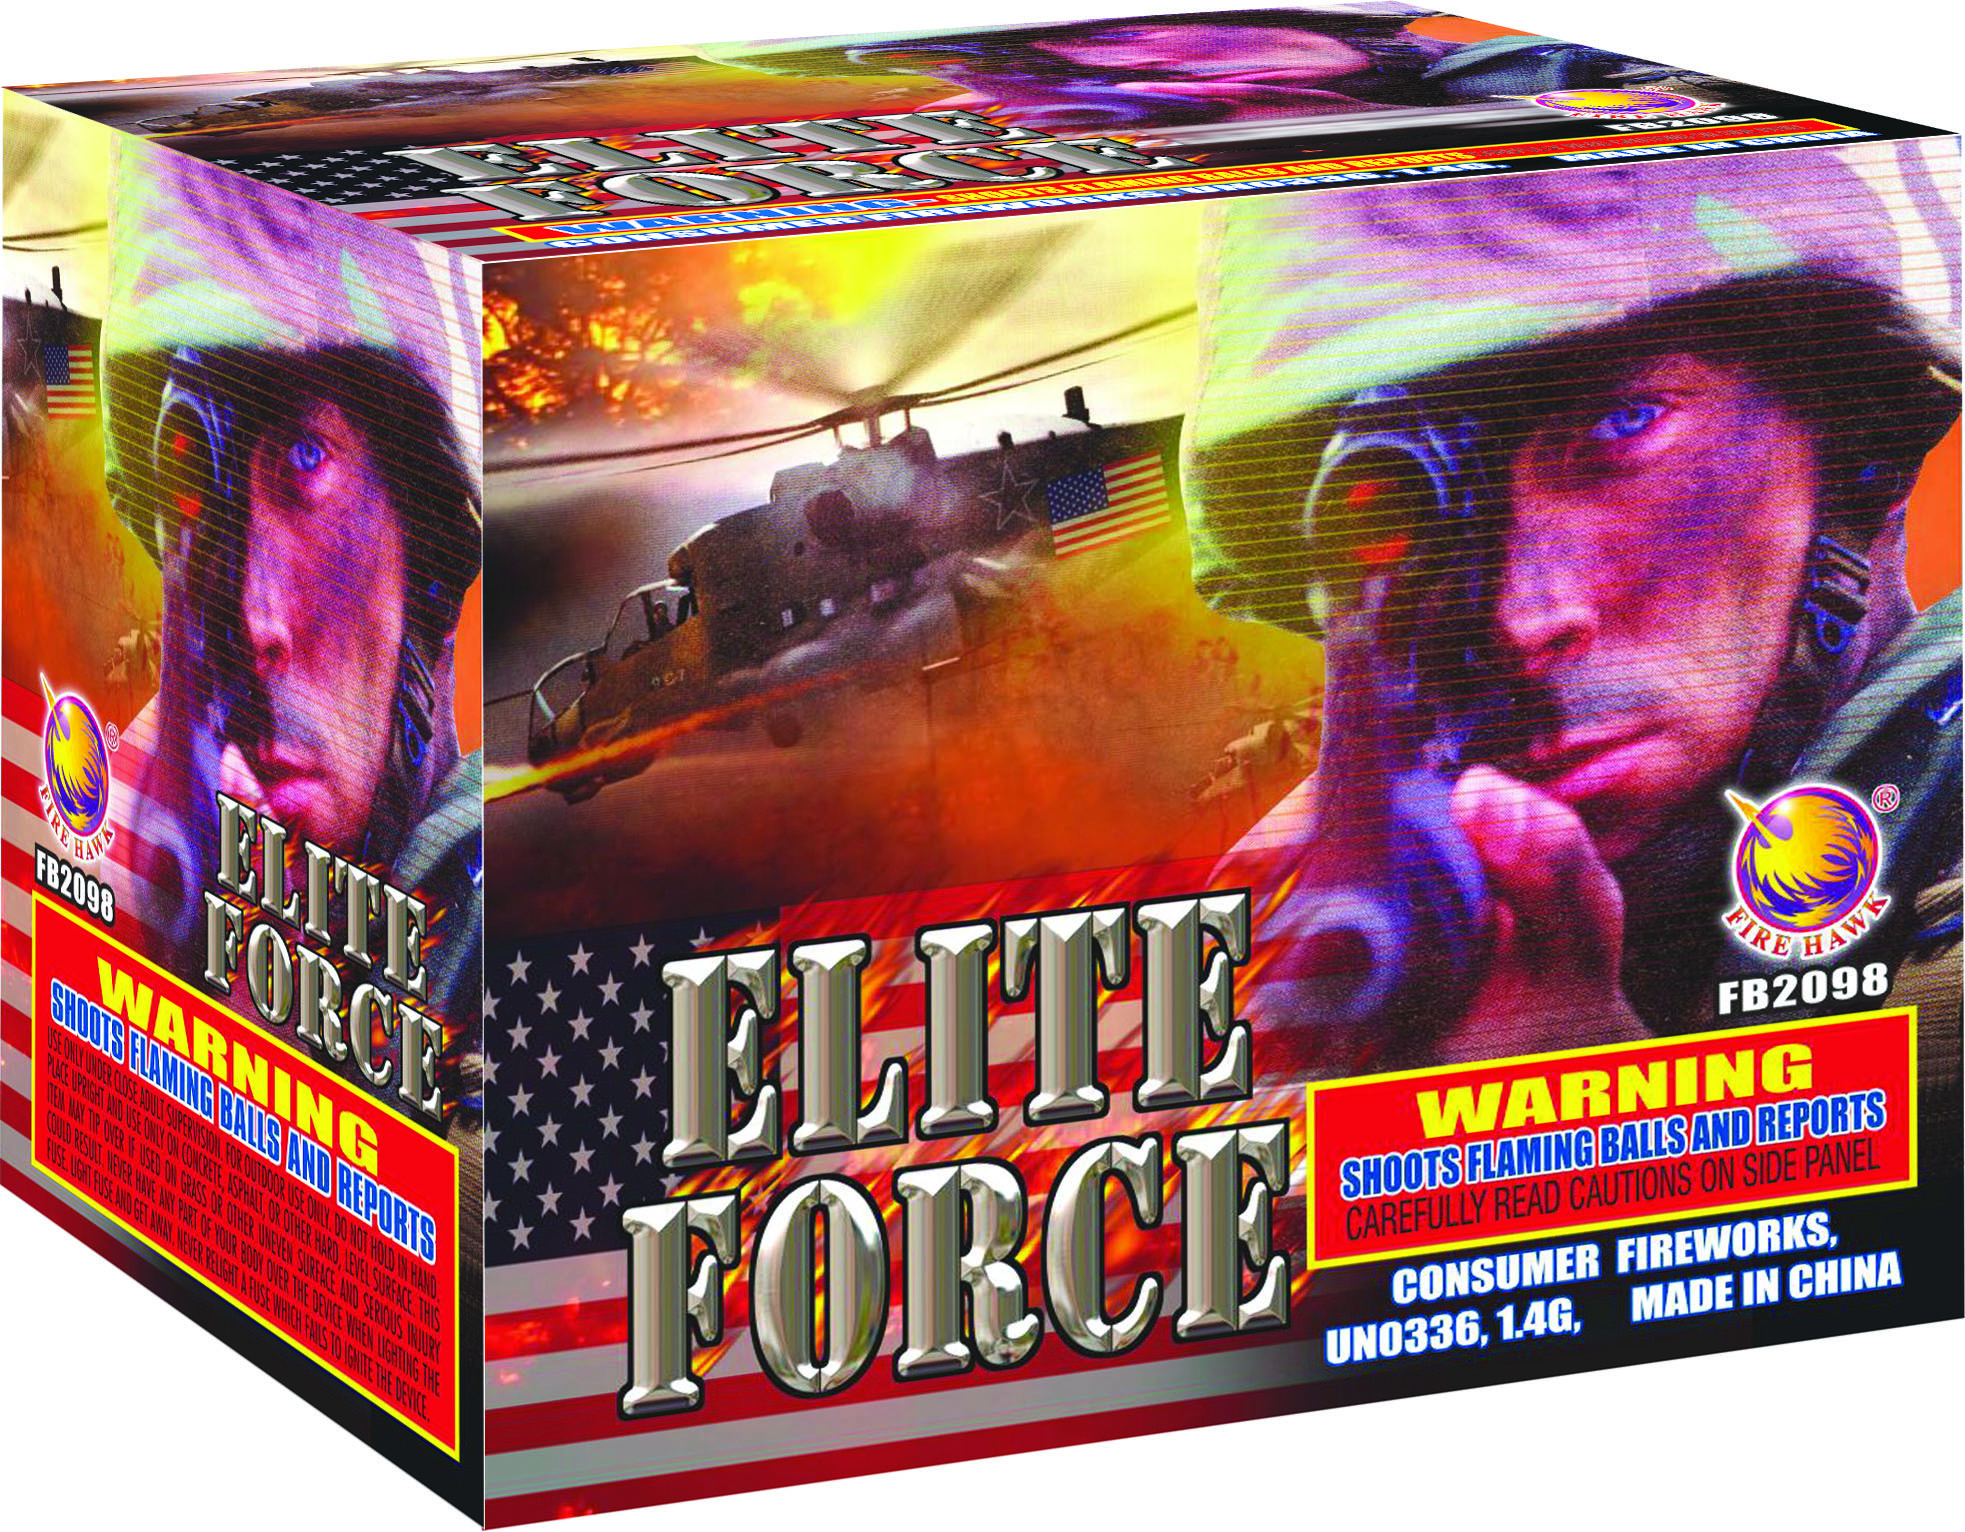 FB2098 Elite Force